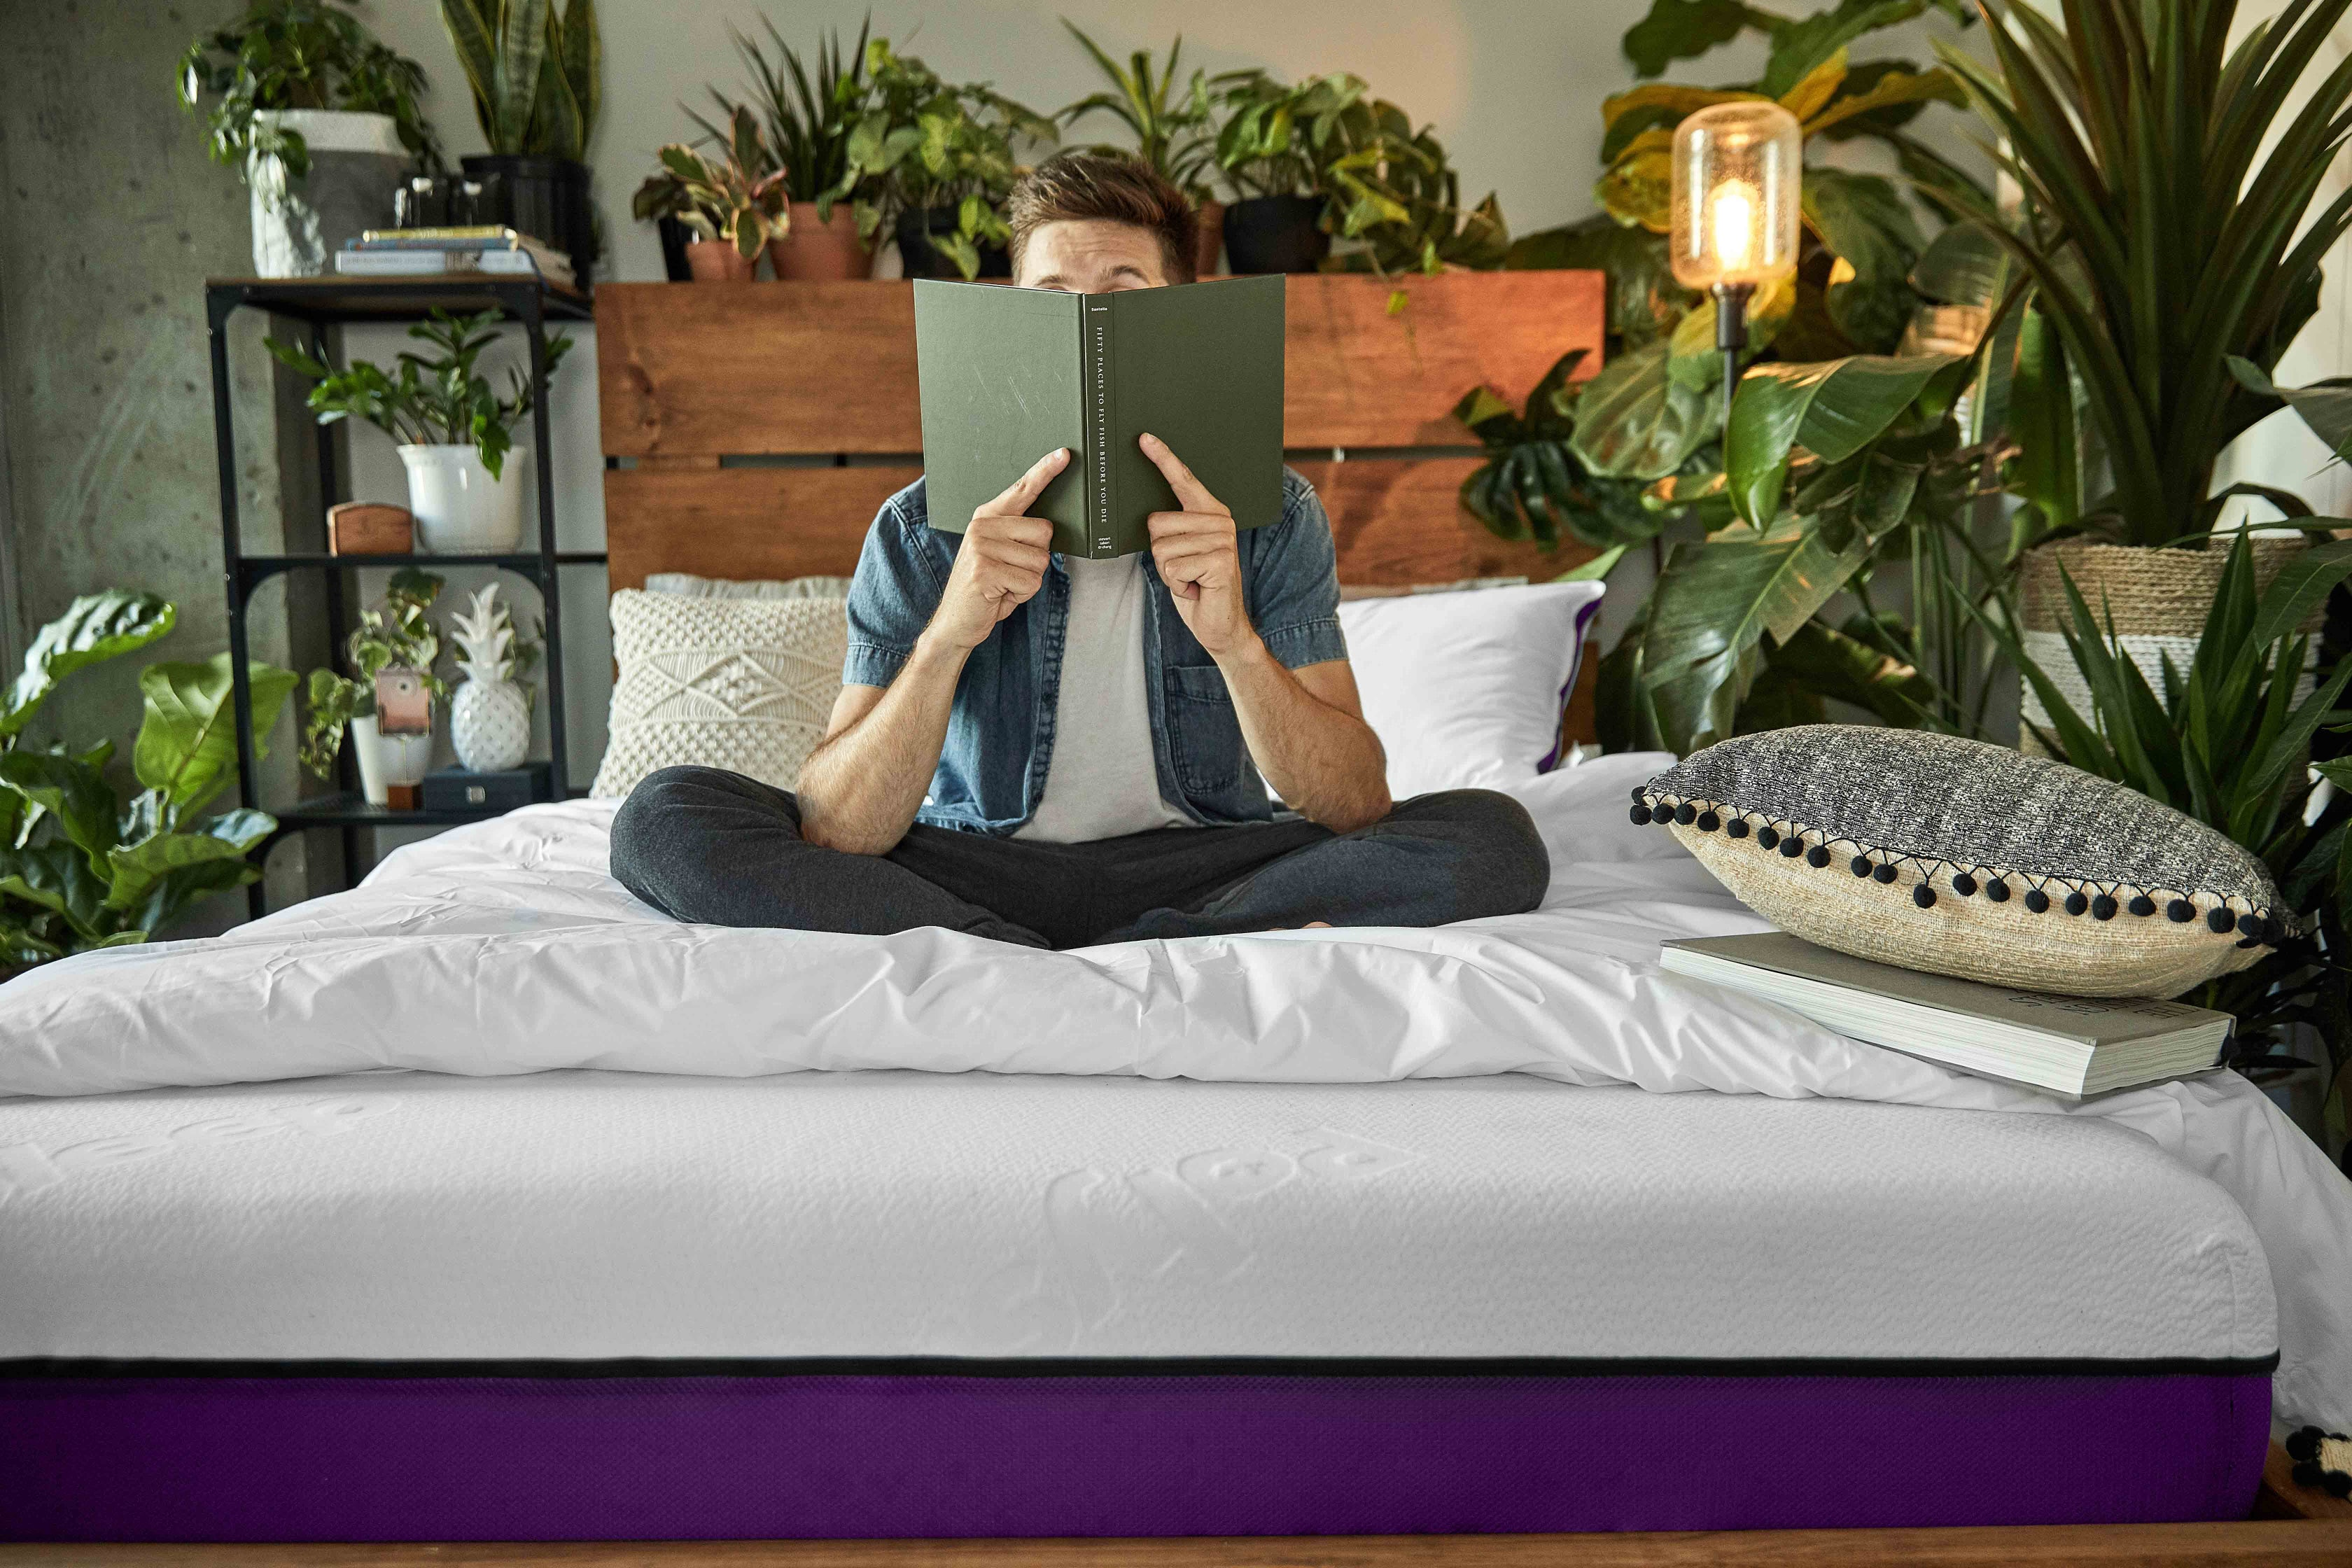 Young man reading a book while sitting on its Polysleep mattress